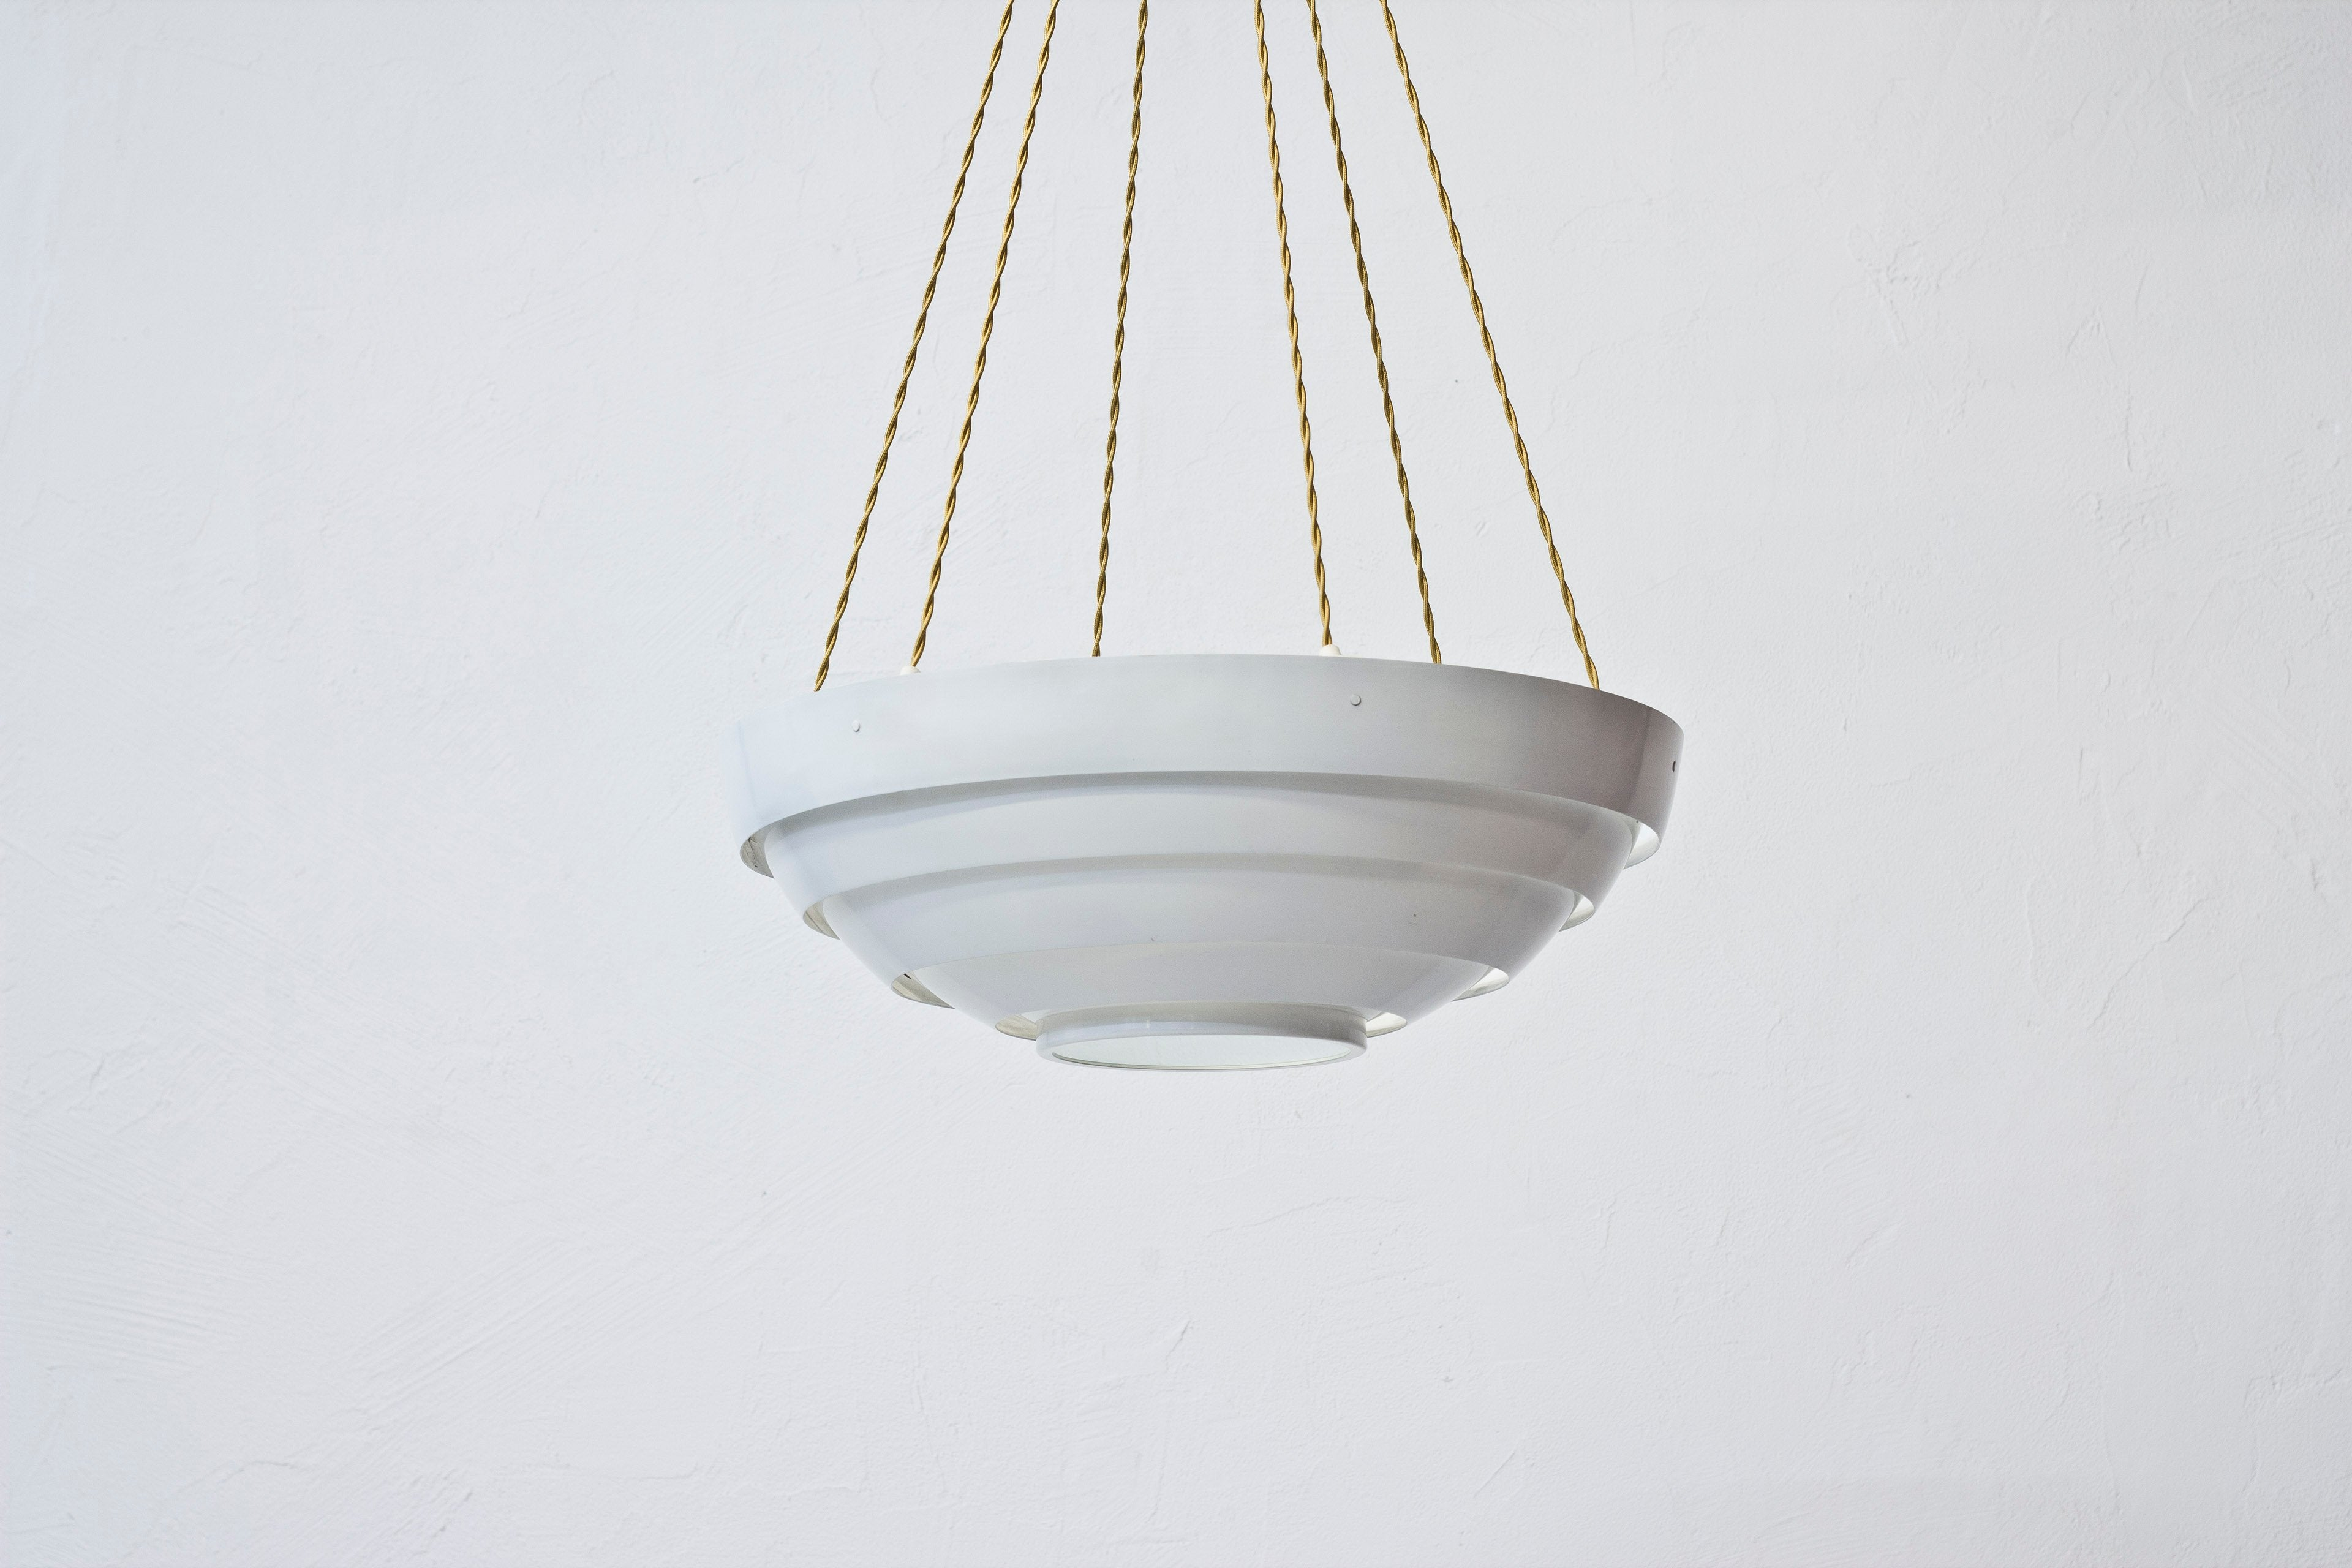 Ceiling lamp attributed to Hans Agne jakobsson